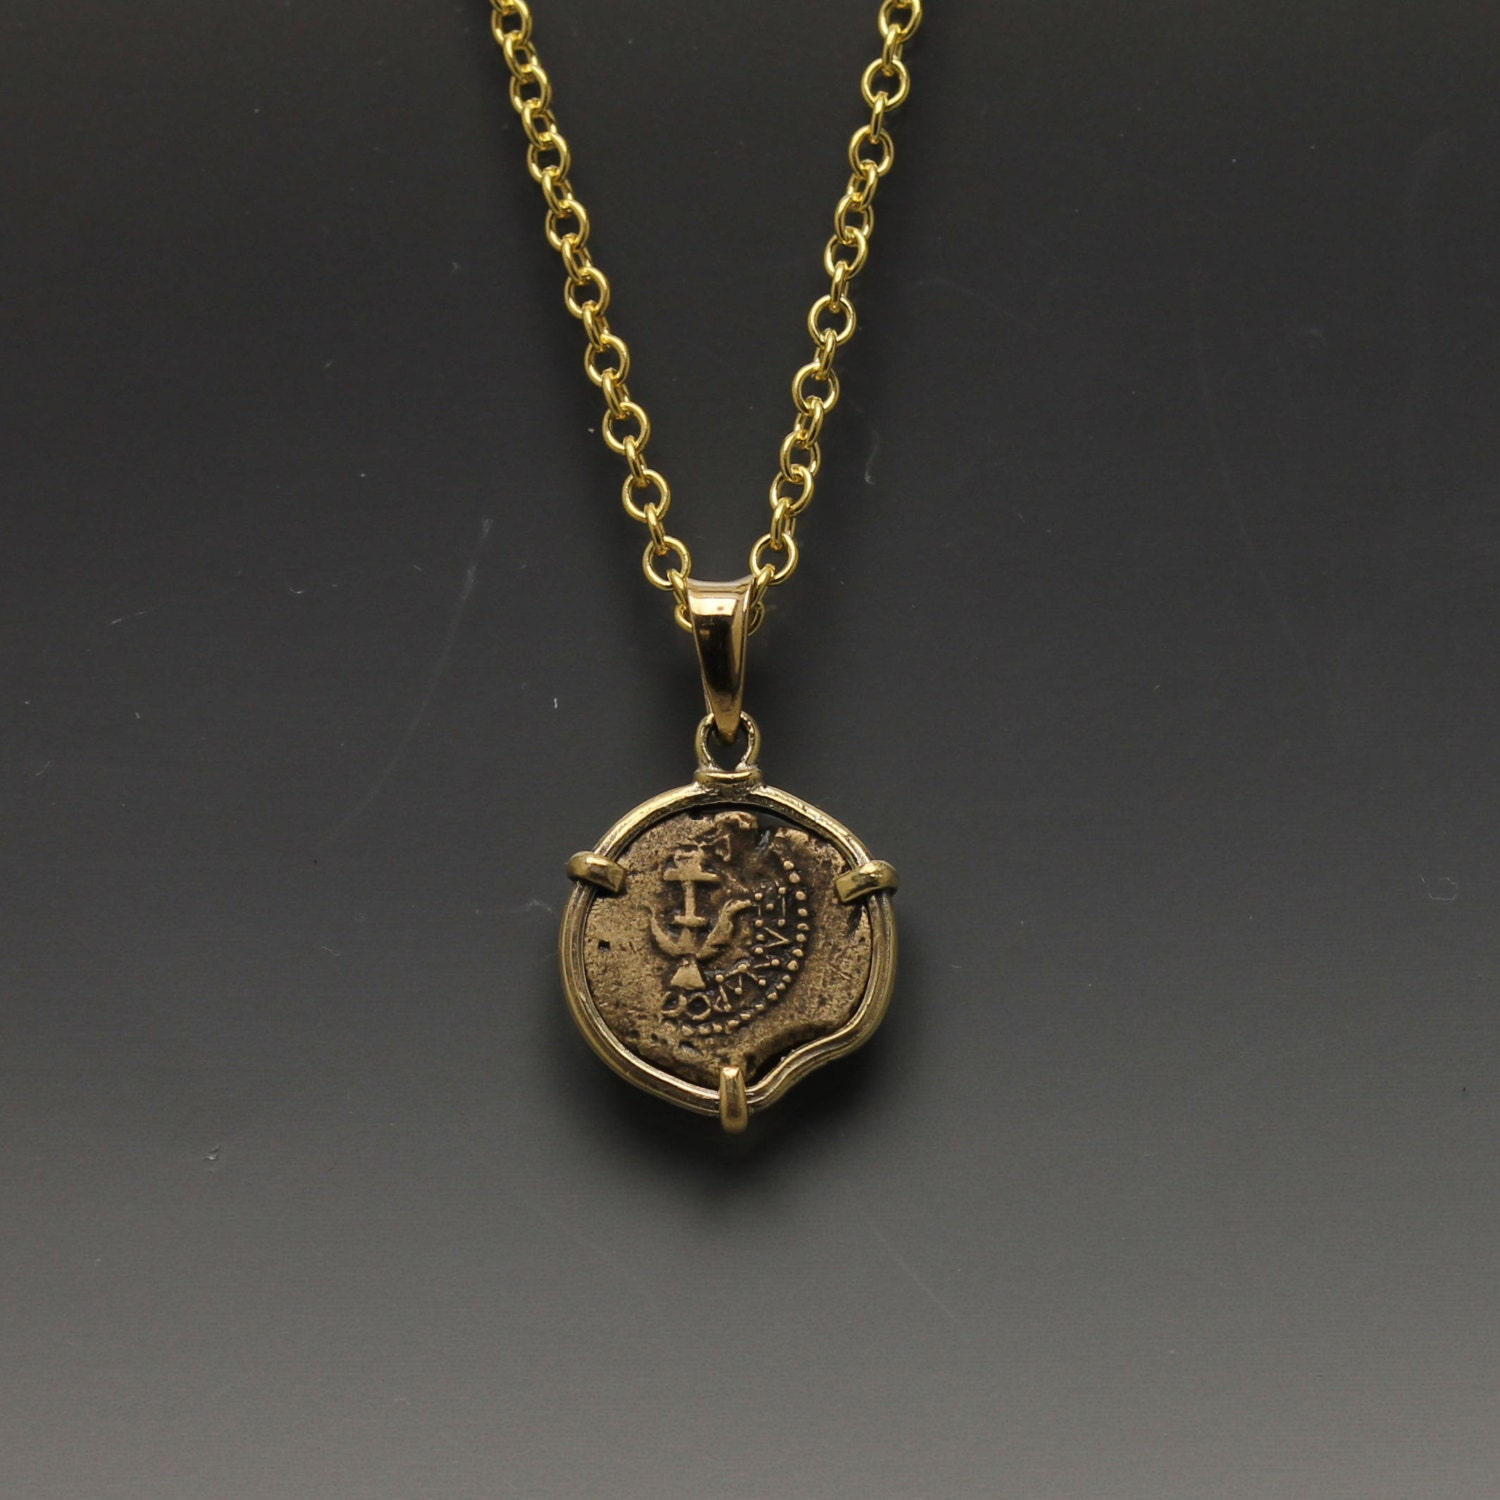 ancient coin necklace 14 karat gold pendant with gold plated